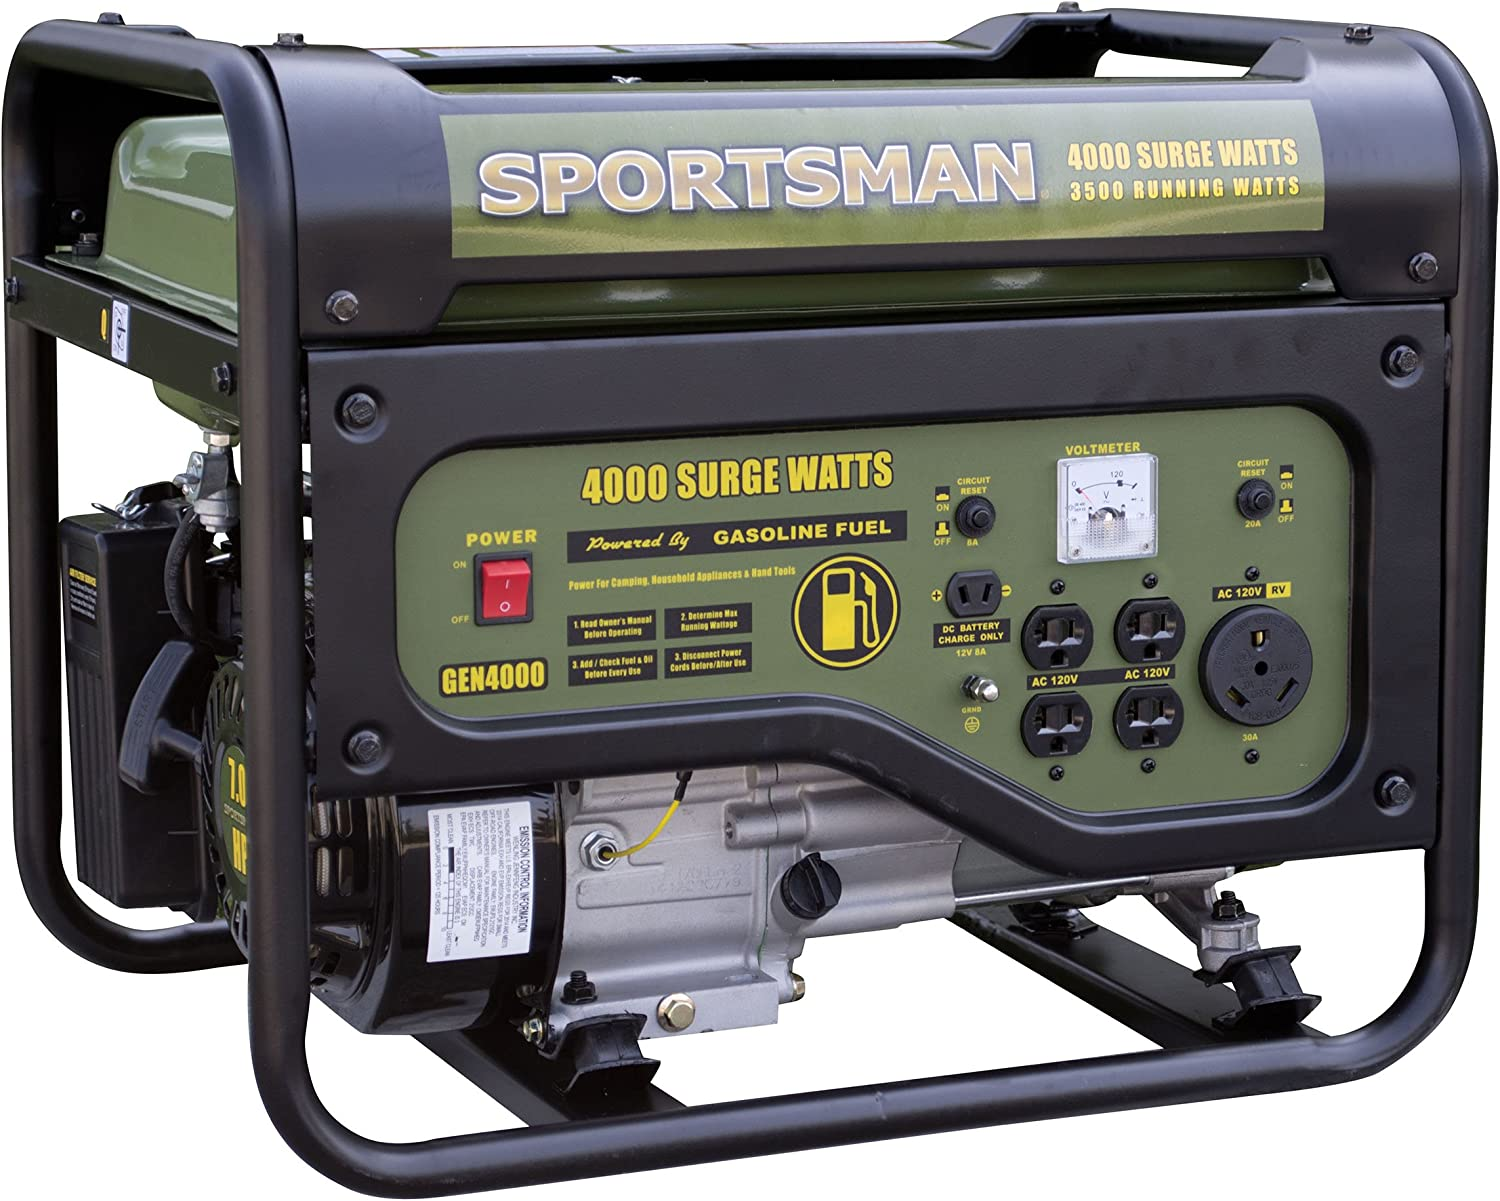 Best Home Generators For Power Outages (2021): Top 10 List 6